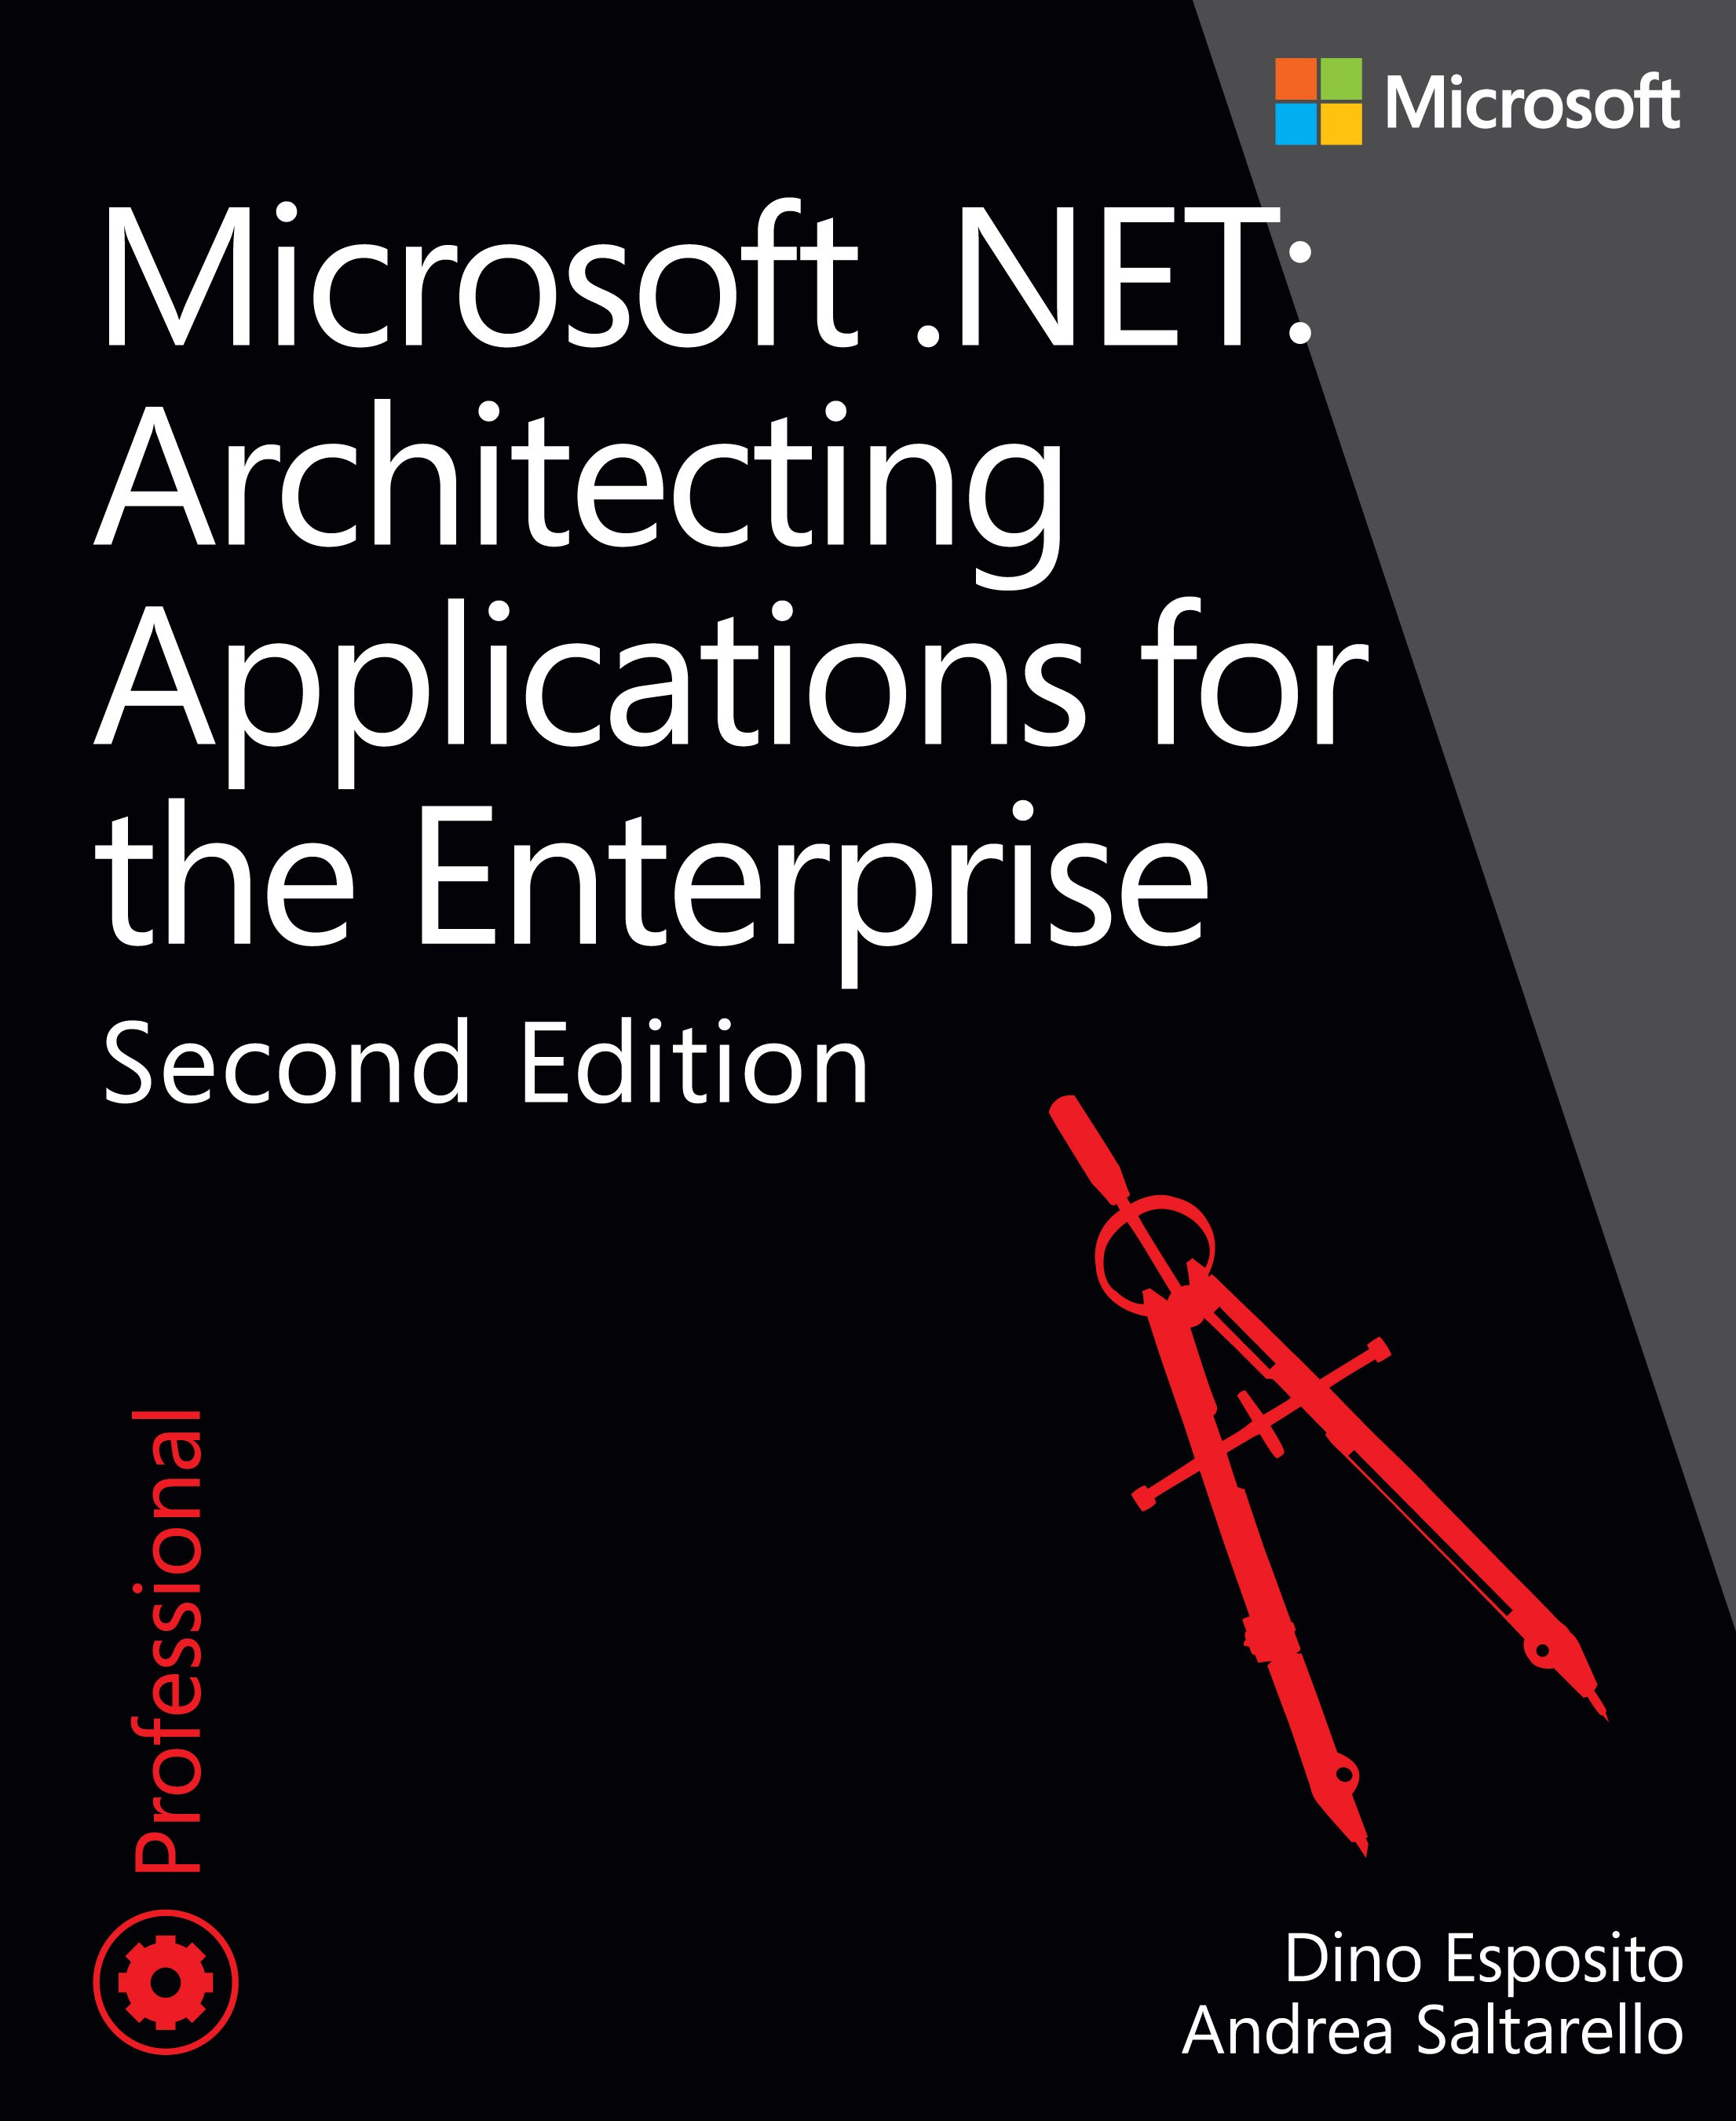 Microsoft .NET - Architecting Applications for the Enterprise, 2nd Edition